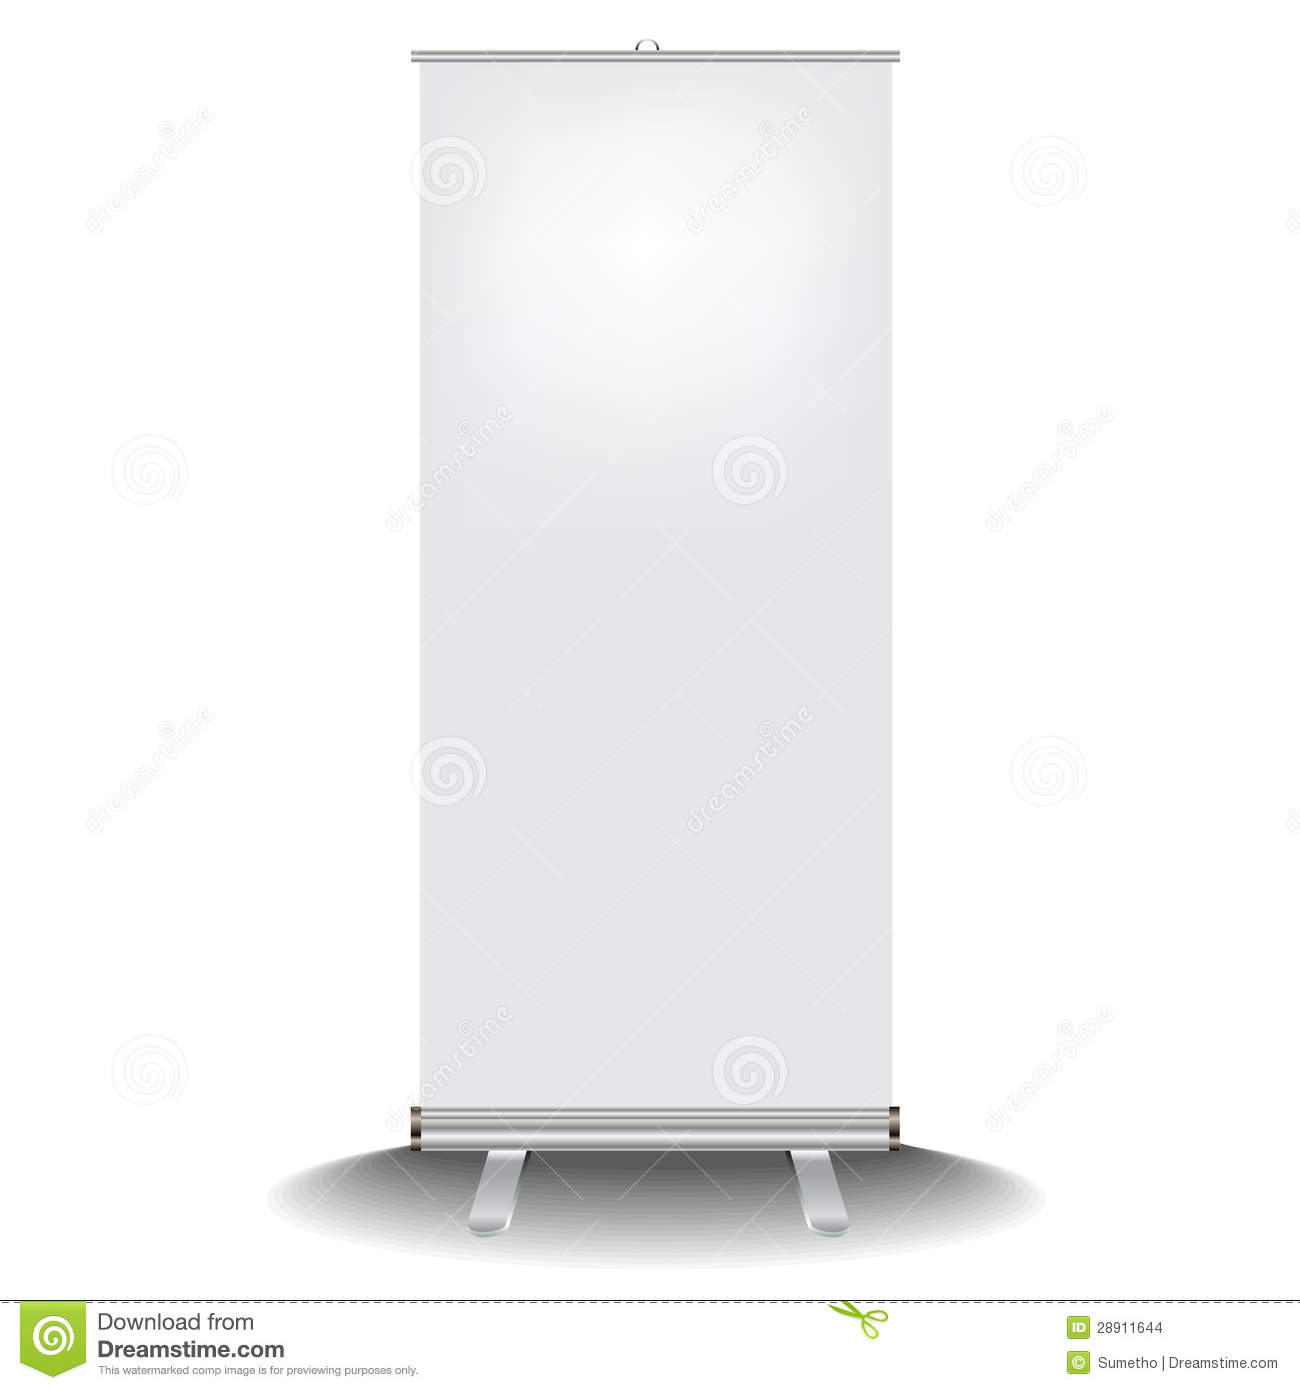 Roll Up Banner Stock Vector Illustration Of Blank Up